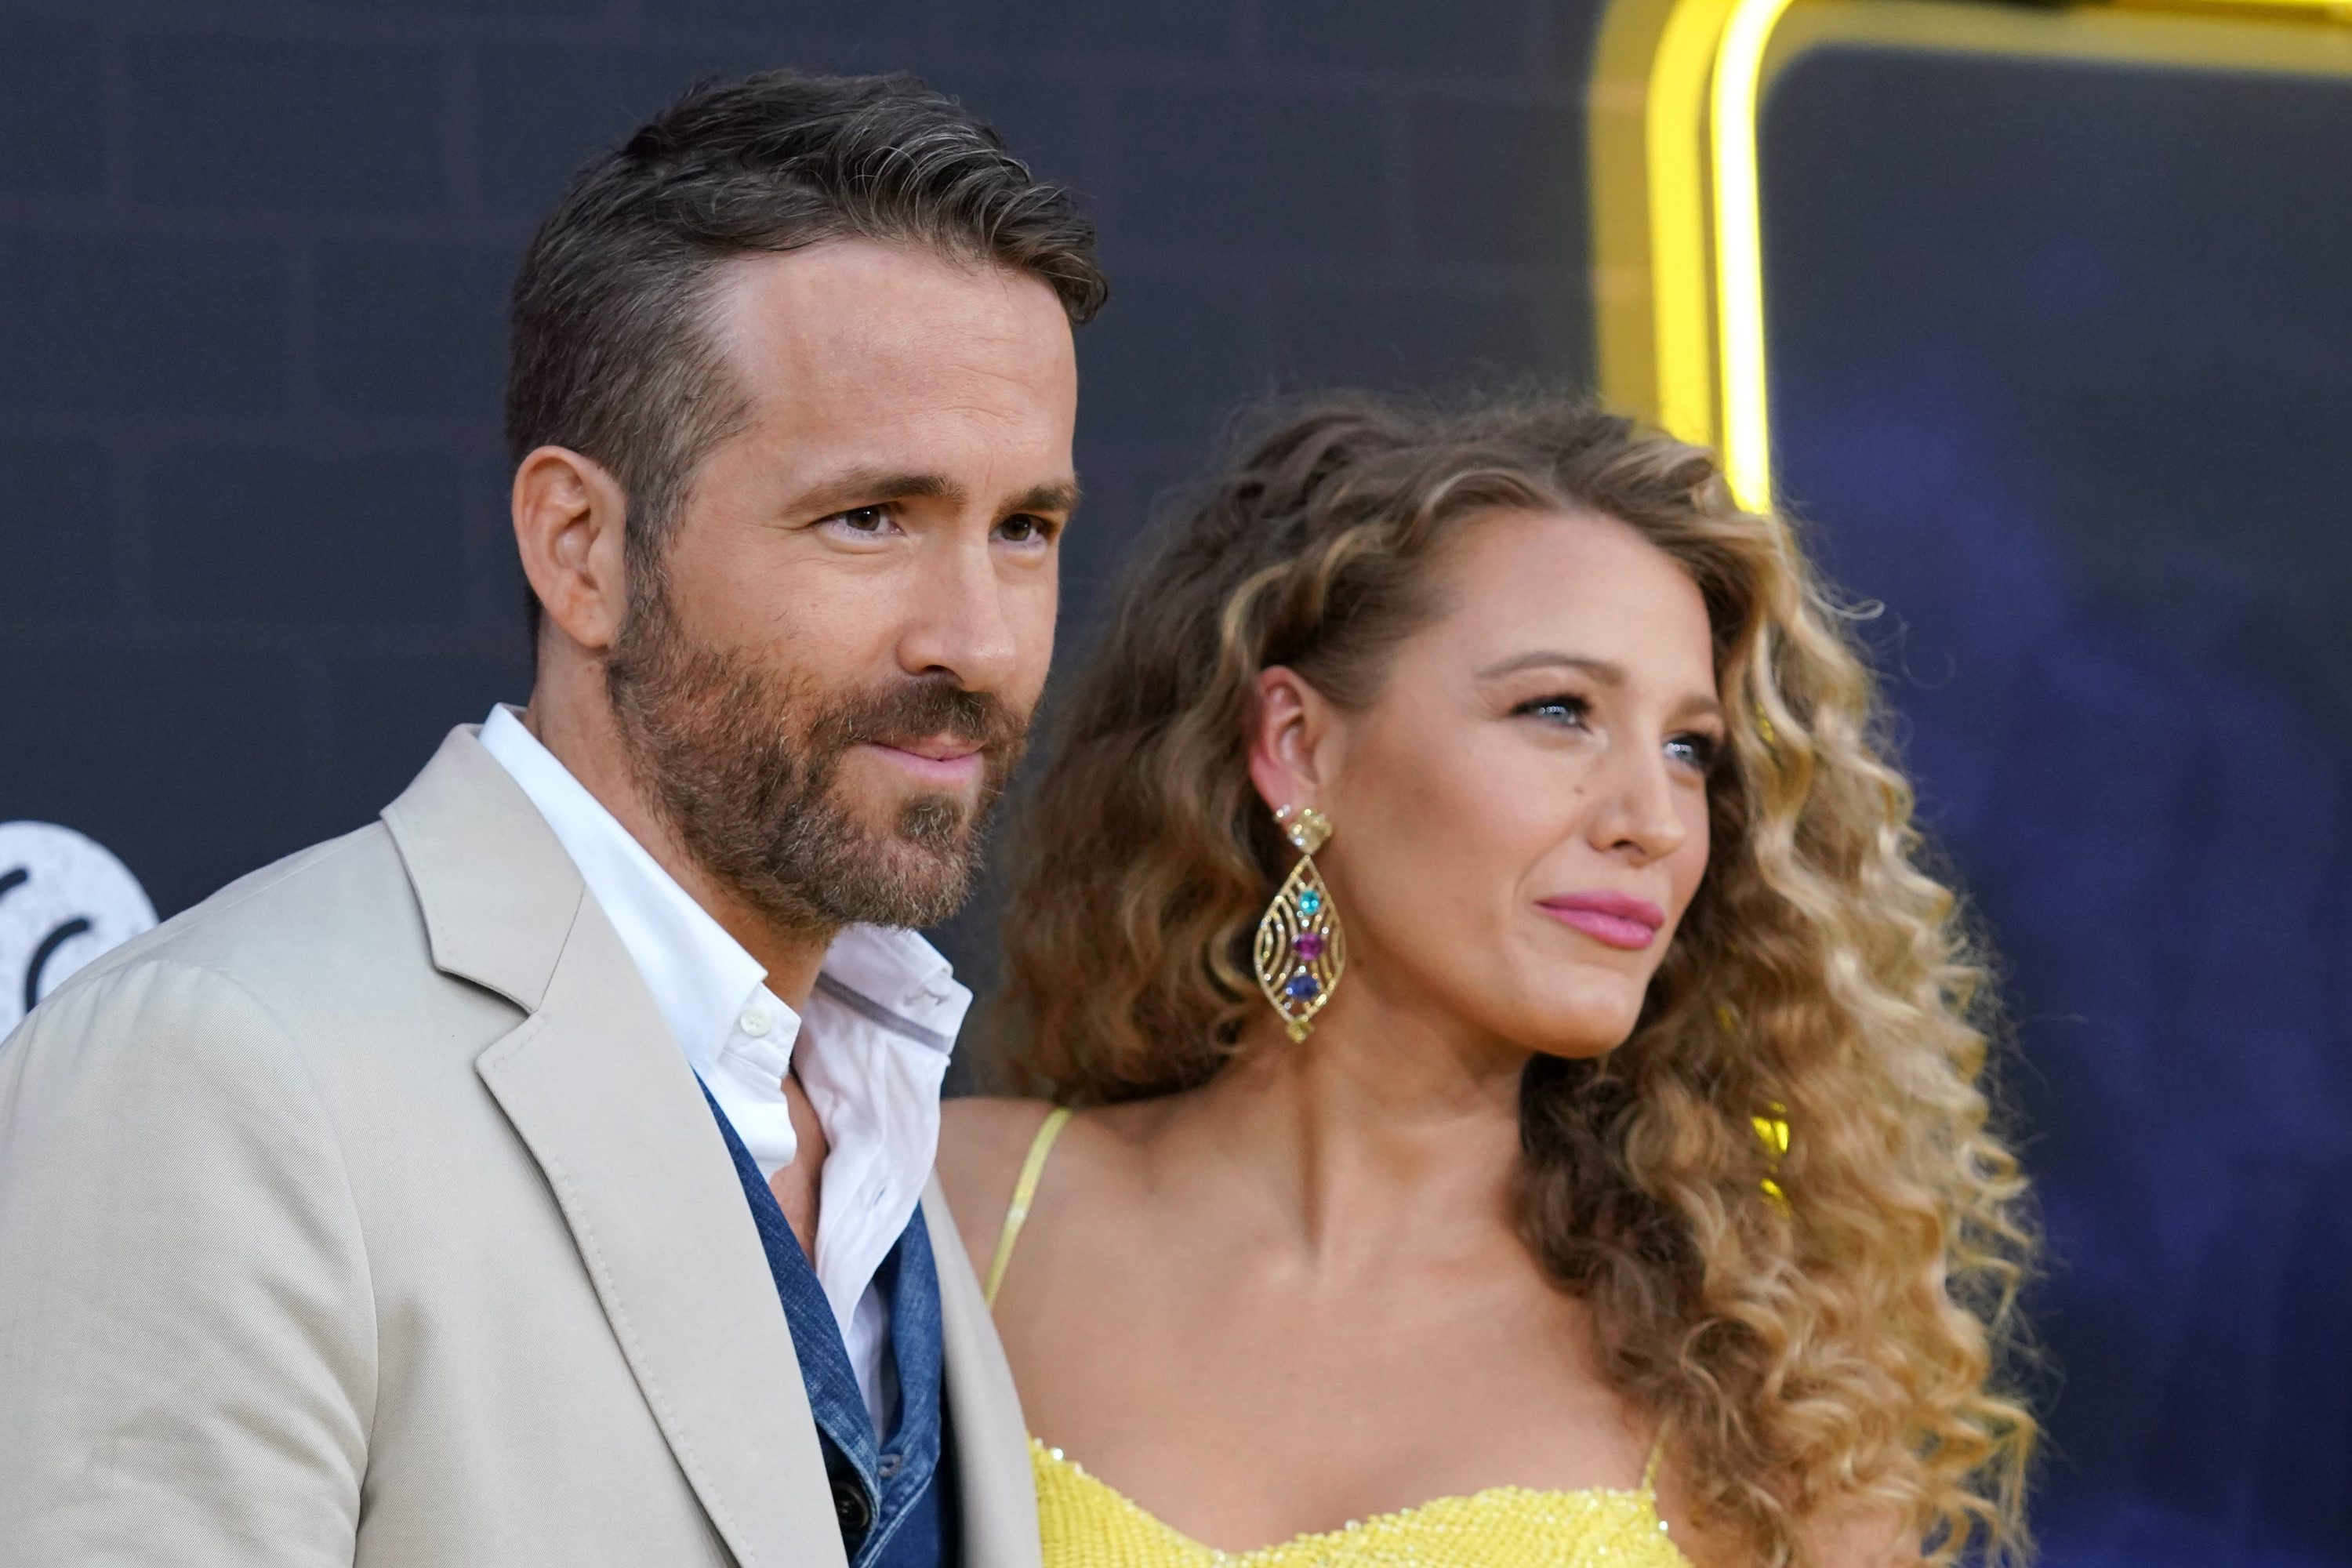 Blake Lively Has The Perfect Reaction To Fan-Edited Photo Of Hubby Ryan Reynolds